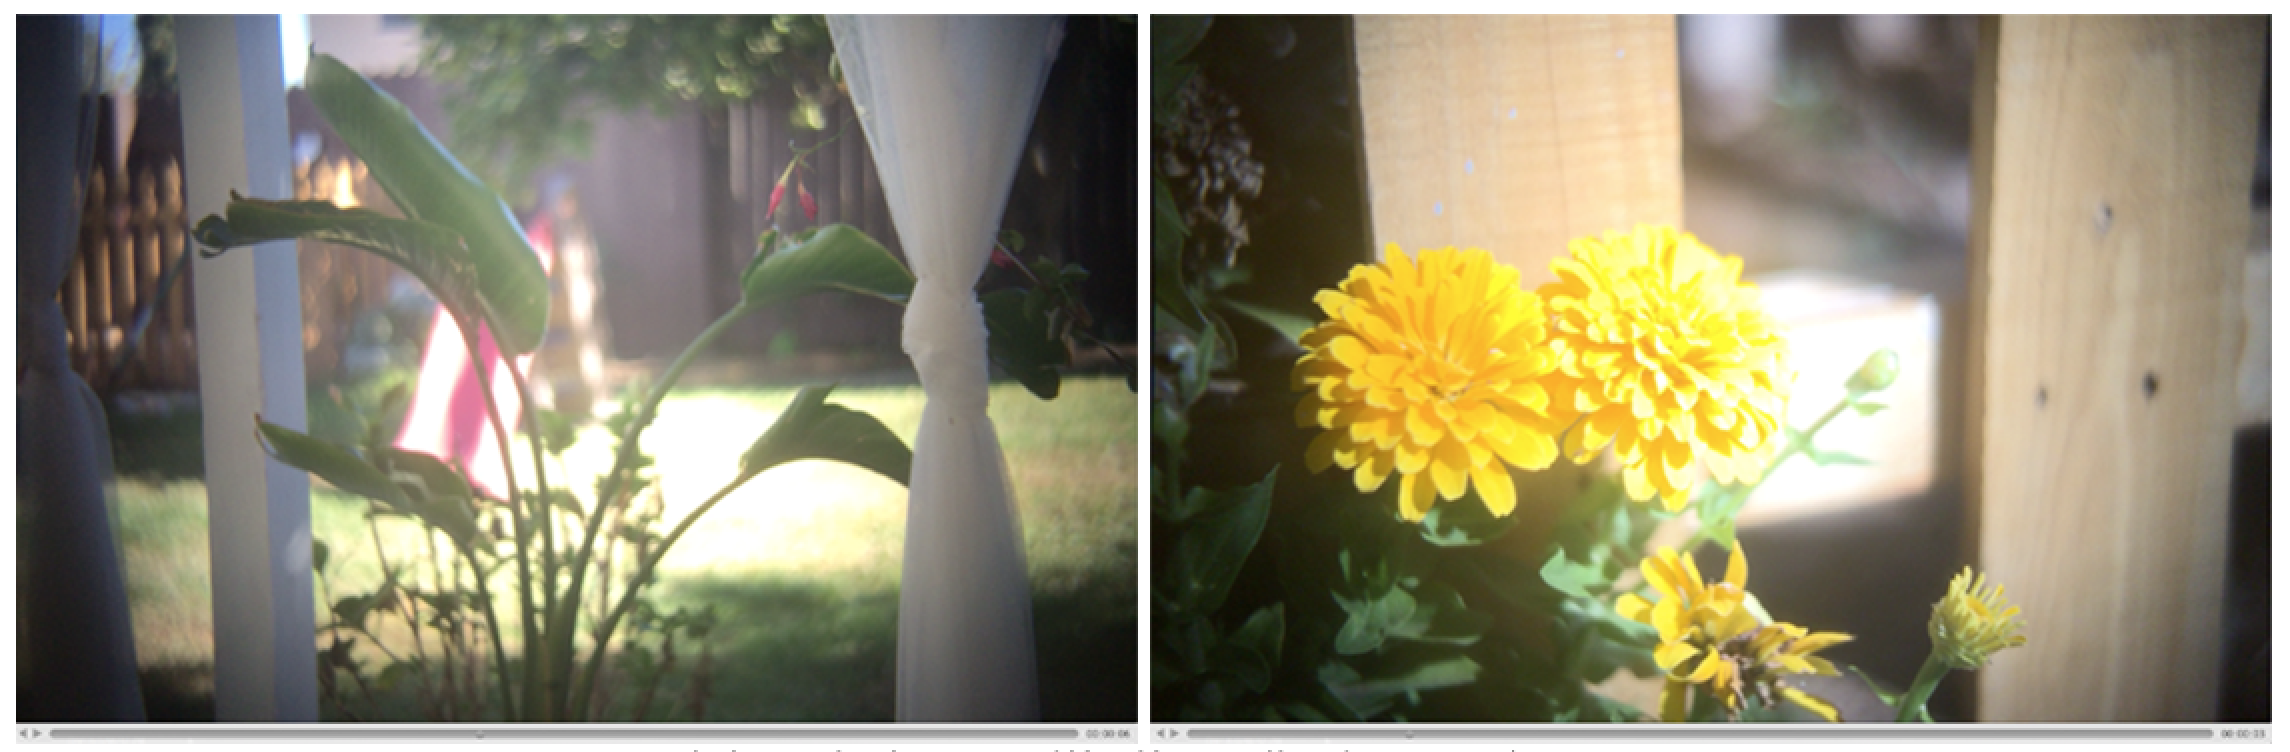 Unfiltered and un-colorgraded frame grabs from the iPhone 6 using the EnCinema SLR Lens Adapter and the  Filmic Pro app .